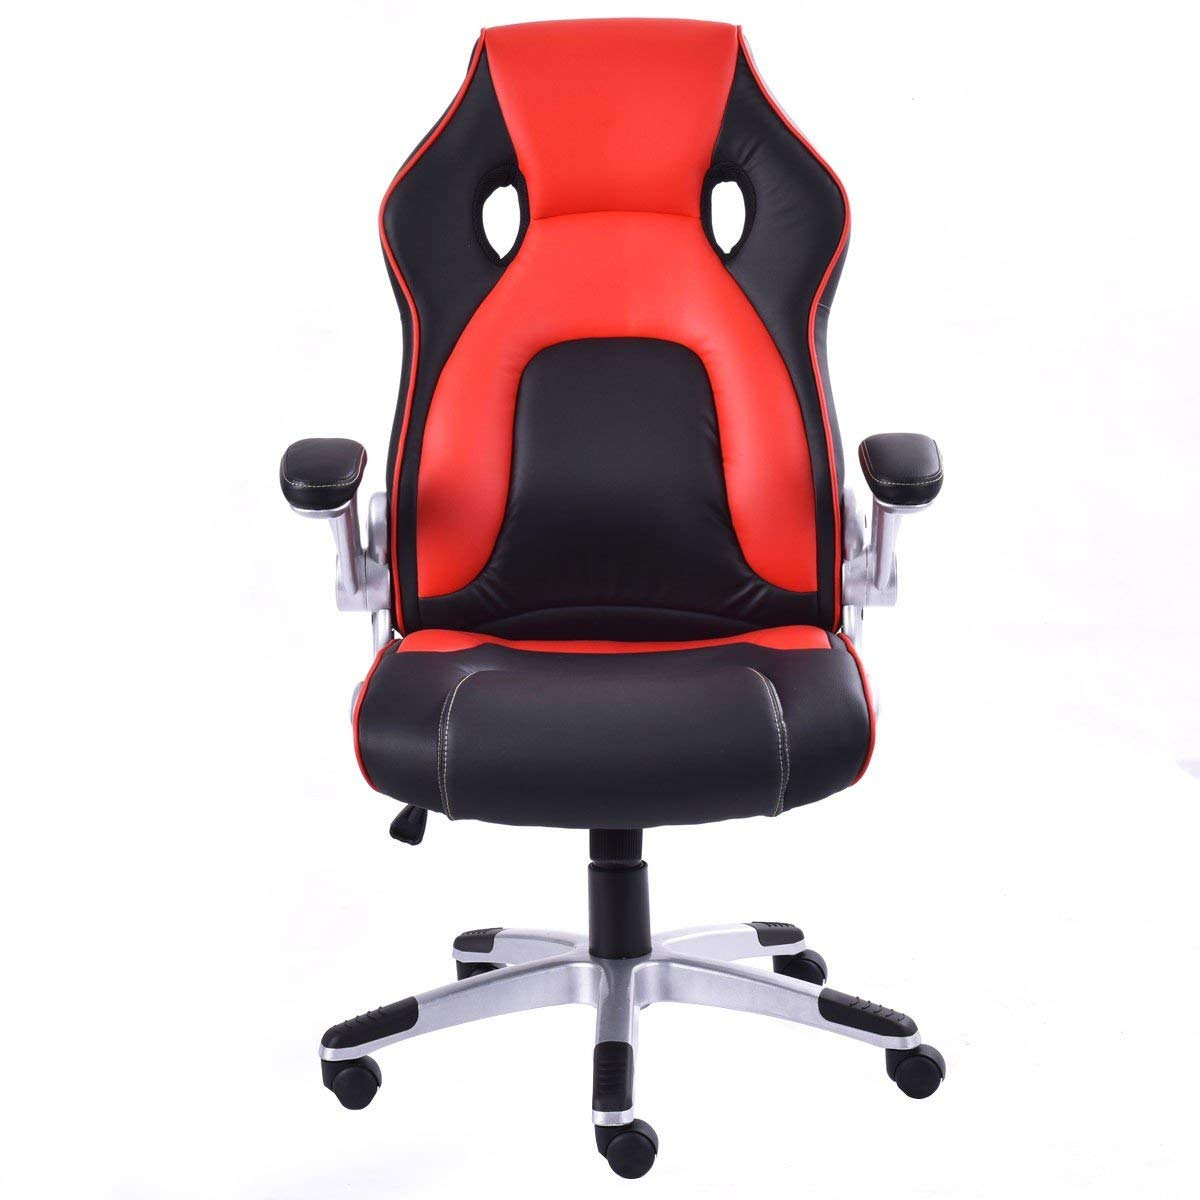 Svitlife Red Executive Racing Style Bucket Seat Gaming Chair High Back Race Work Pu Leather Offcie